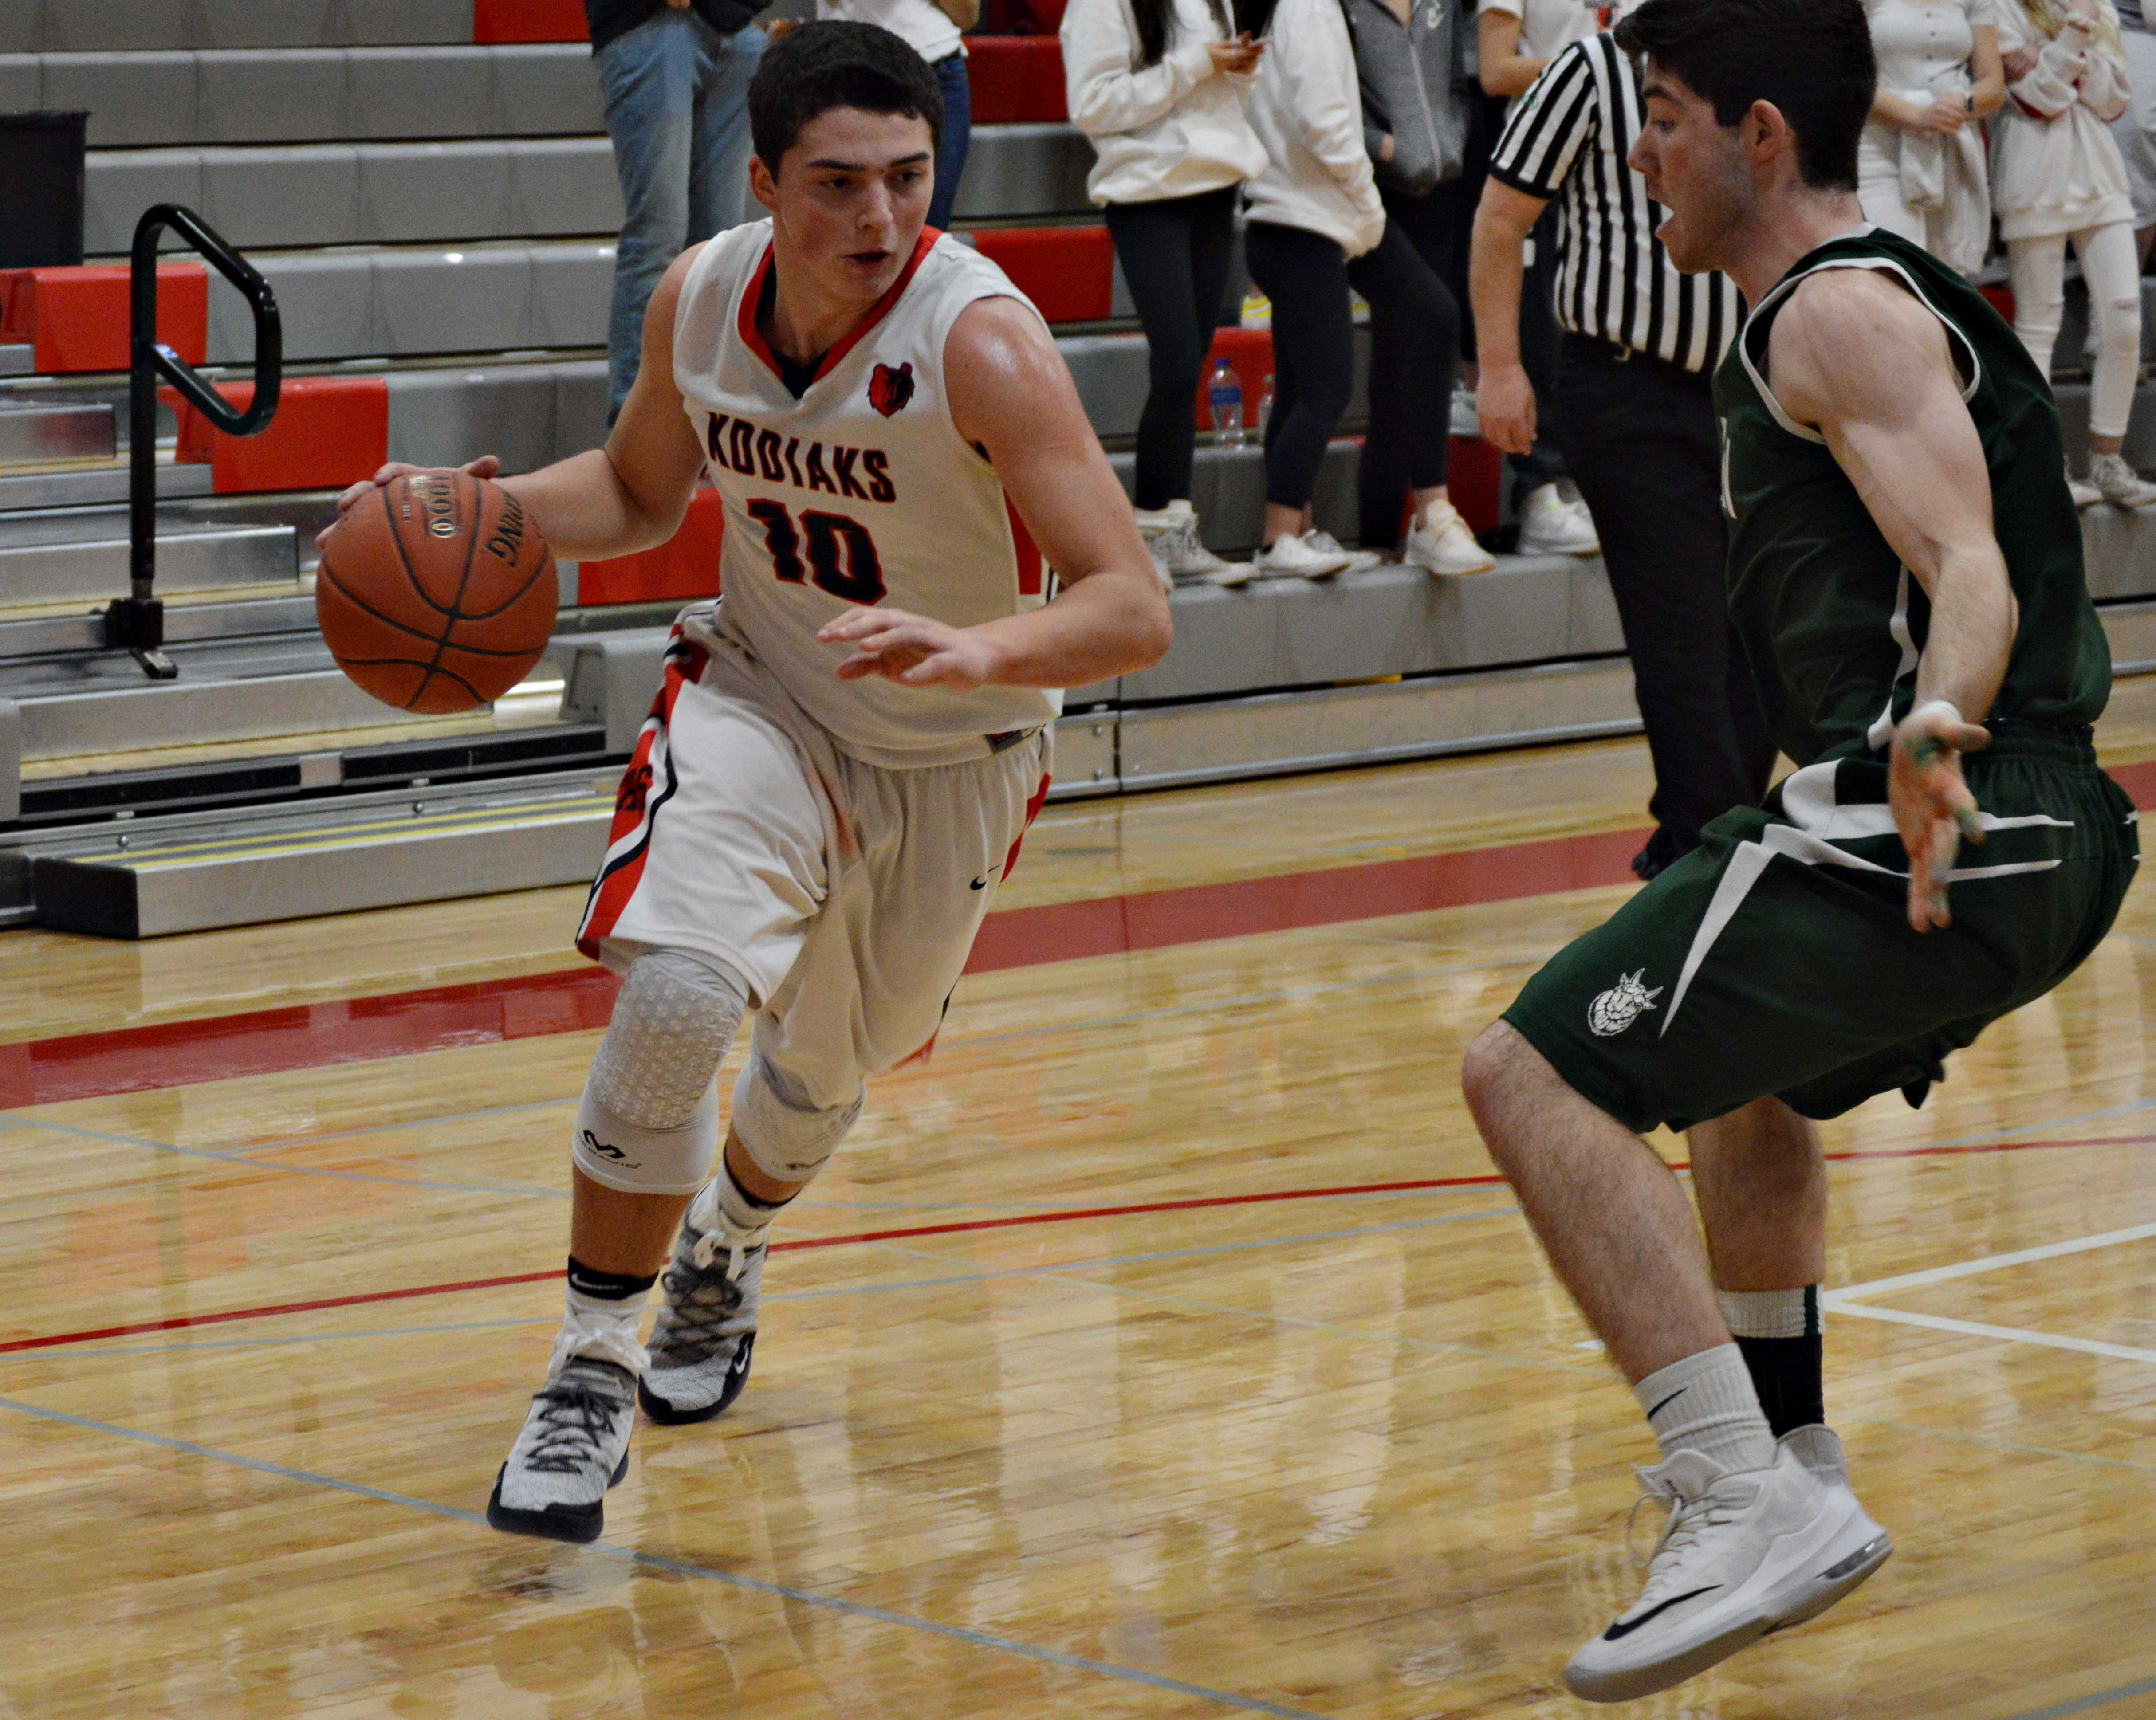 Isaac Cortes scored 10 points, including eight in the second quarter.